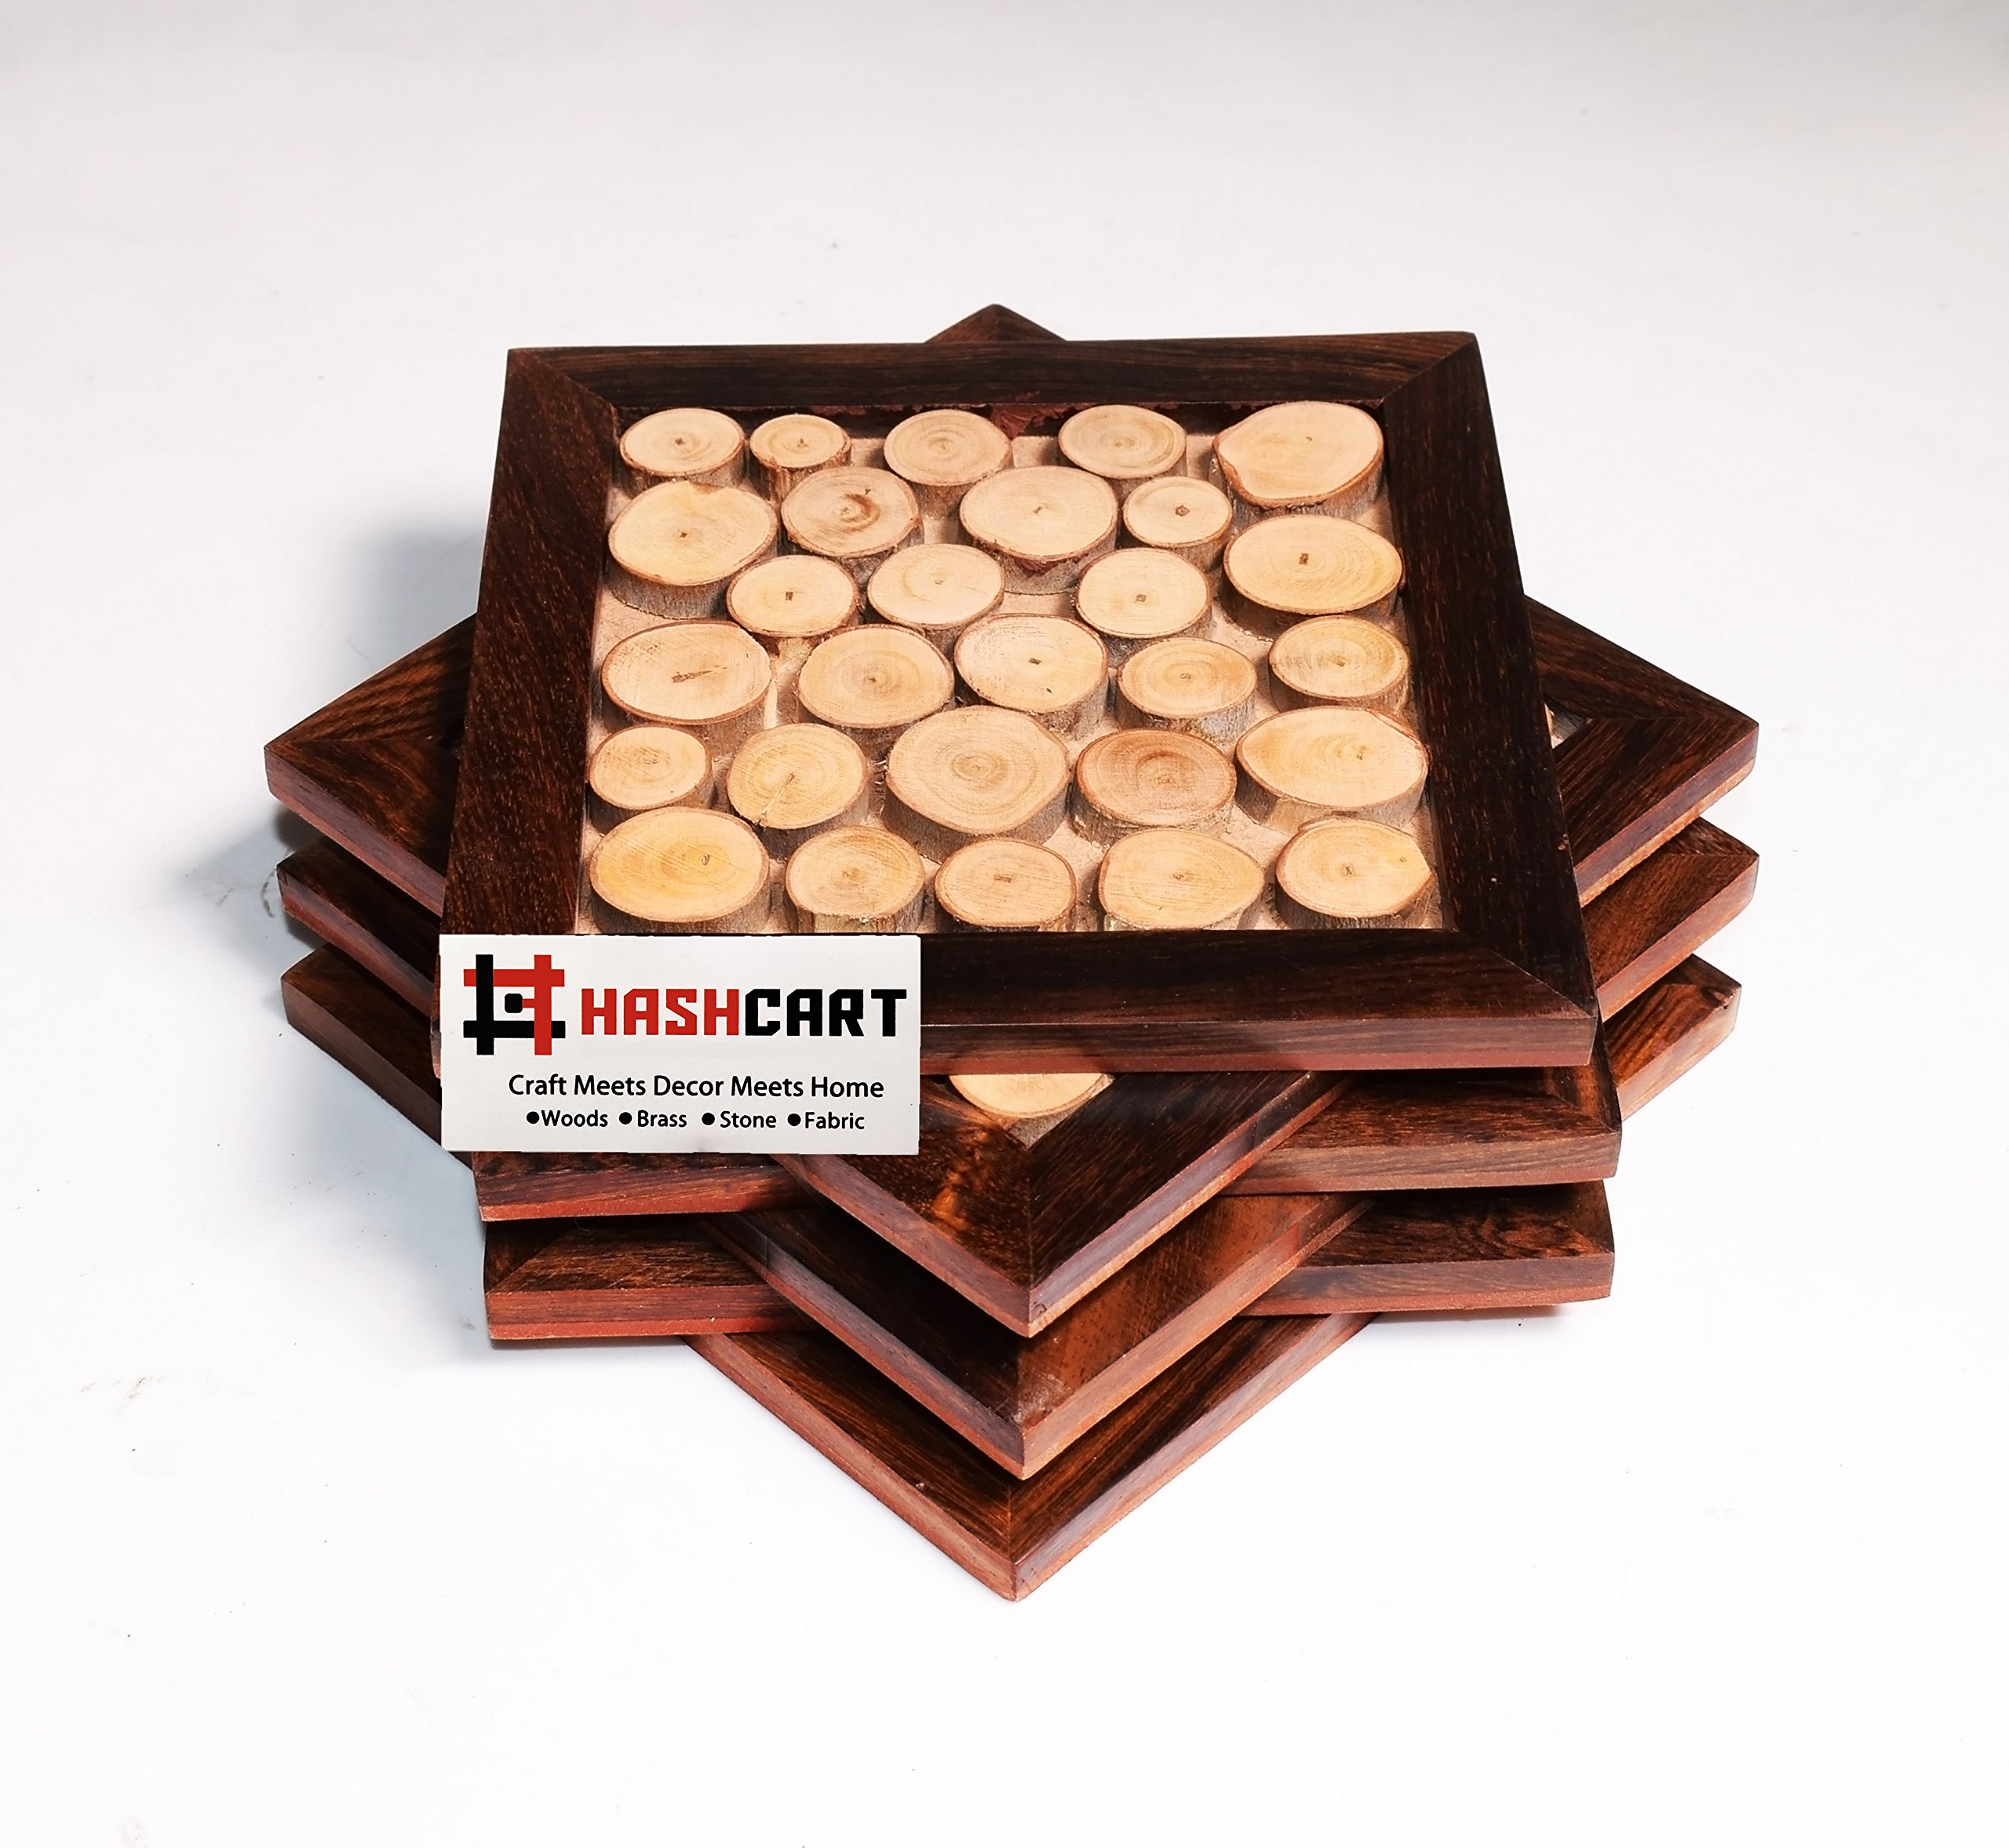 Hashcart Tree Slices, Designed Coasters for Drinks-Hot & Cold/Wooden Coaster Sets for Dining, Tea & Coffee Table Decorative Cocktail Coasters - 5 x 5 Inch- Set of 6